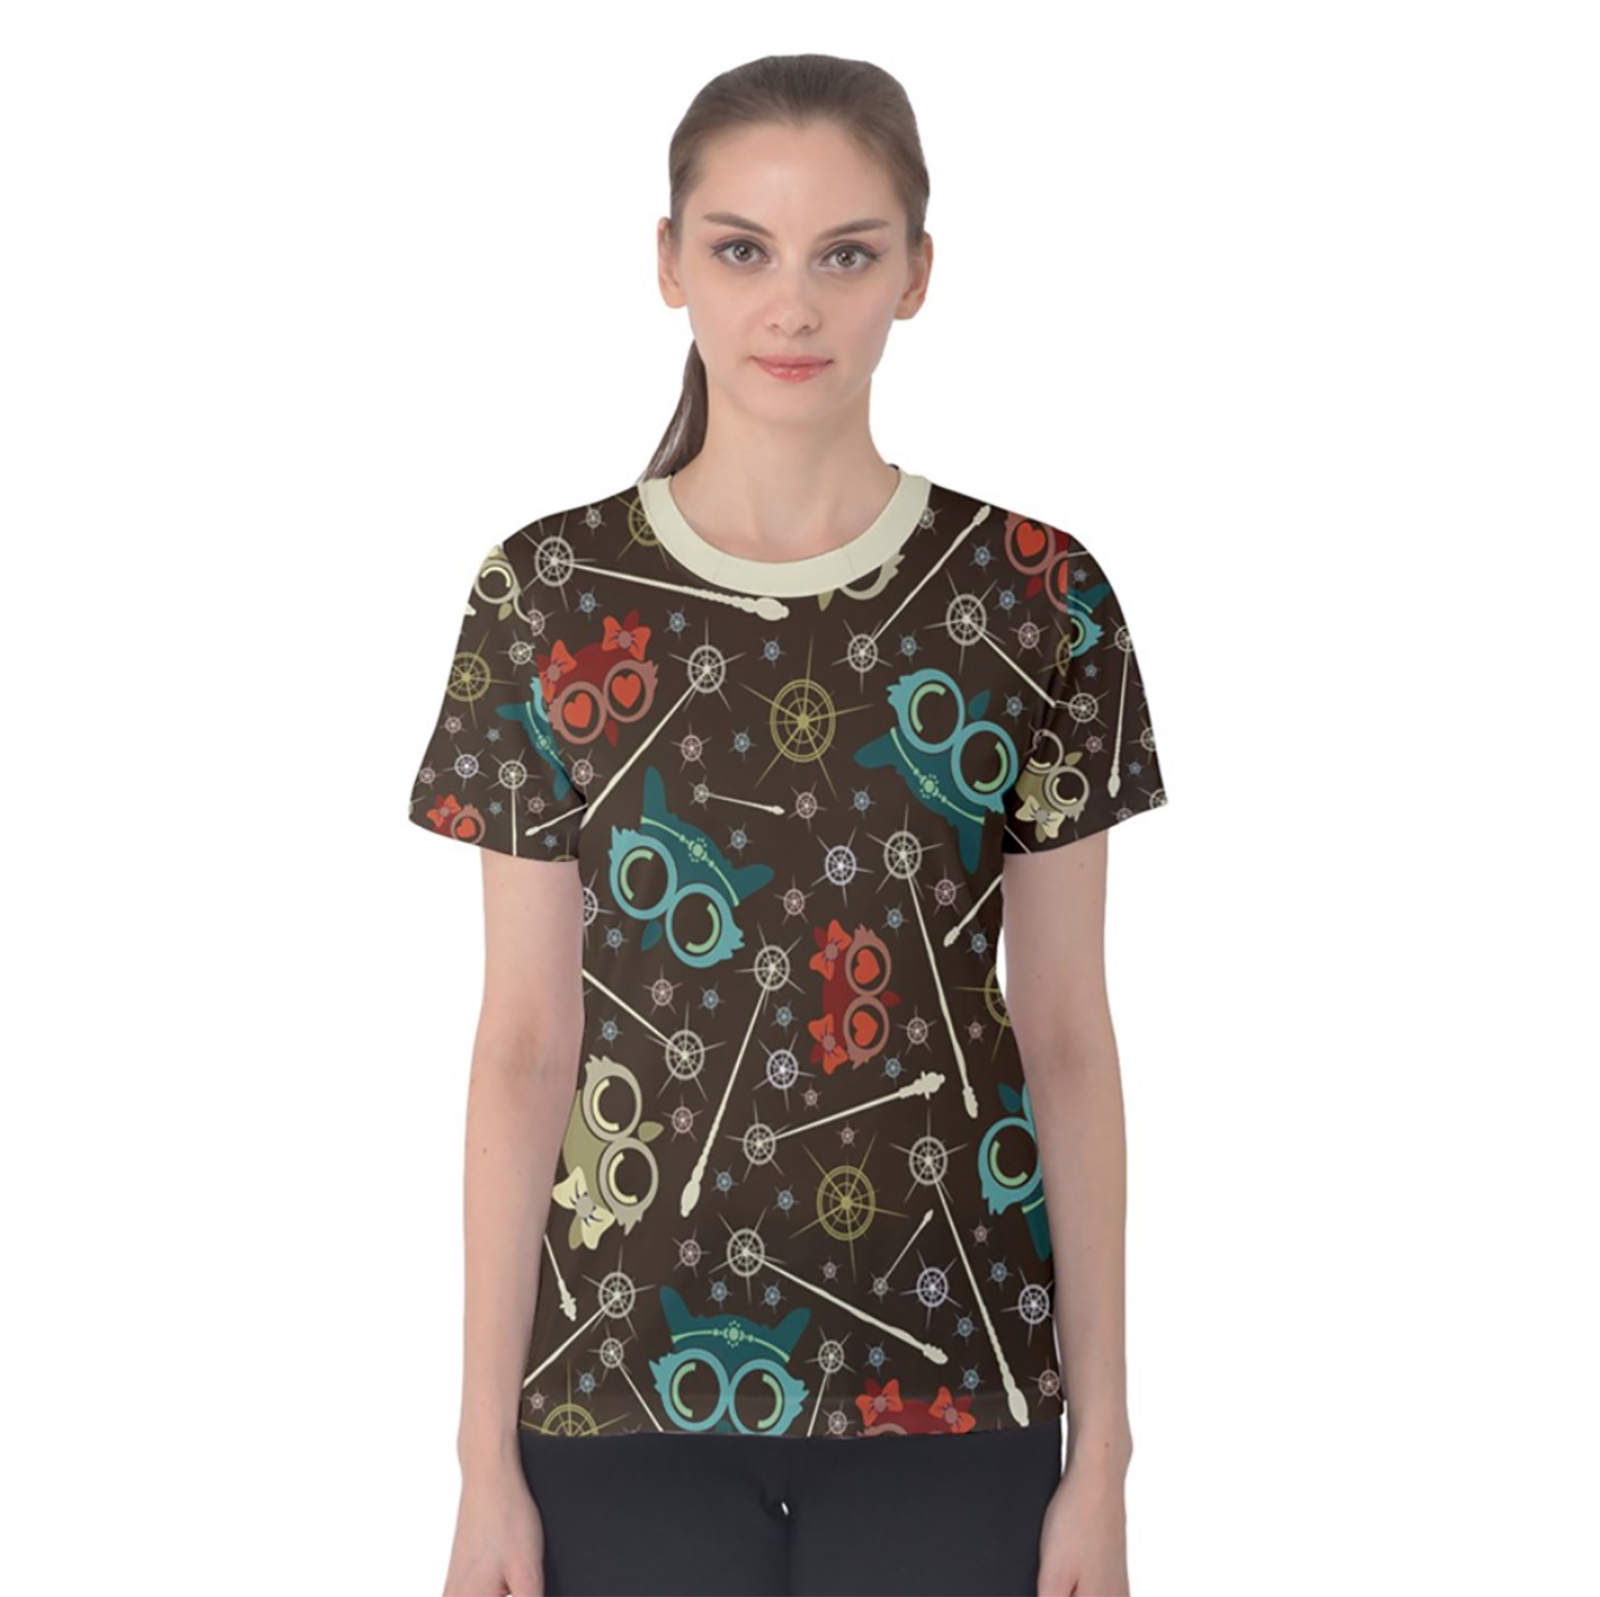 Vintage Emoji Owl Women's Cotton Tee (Patterned)